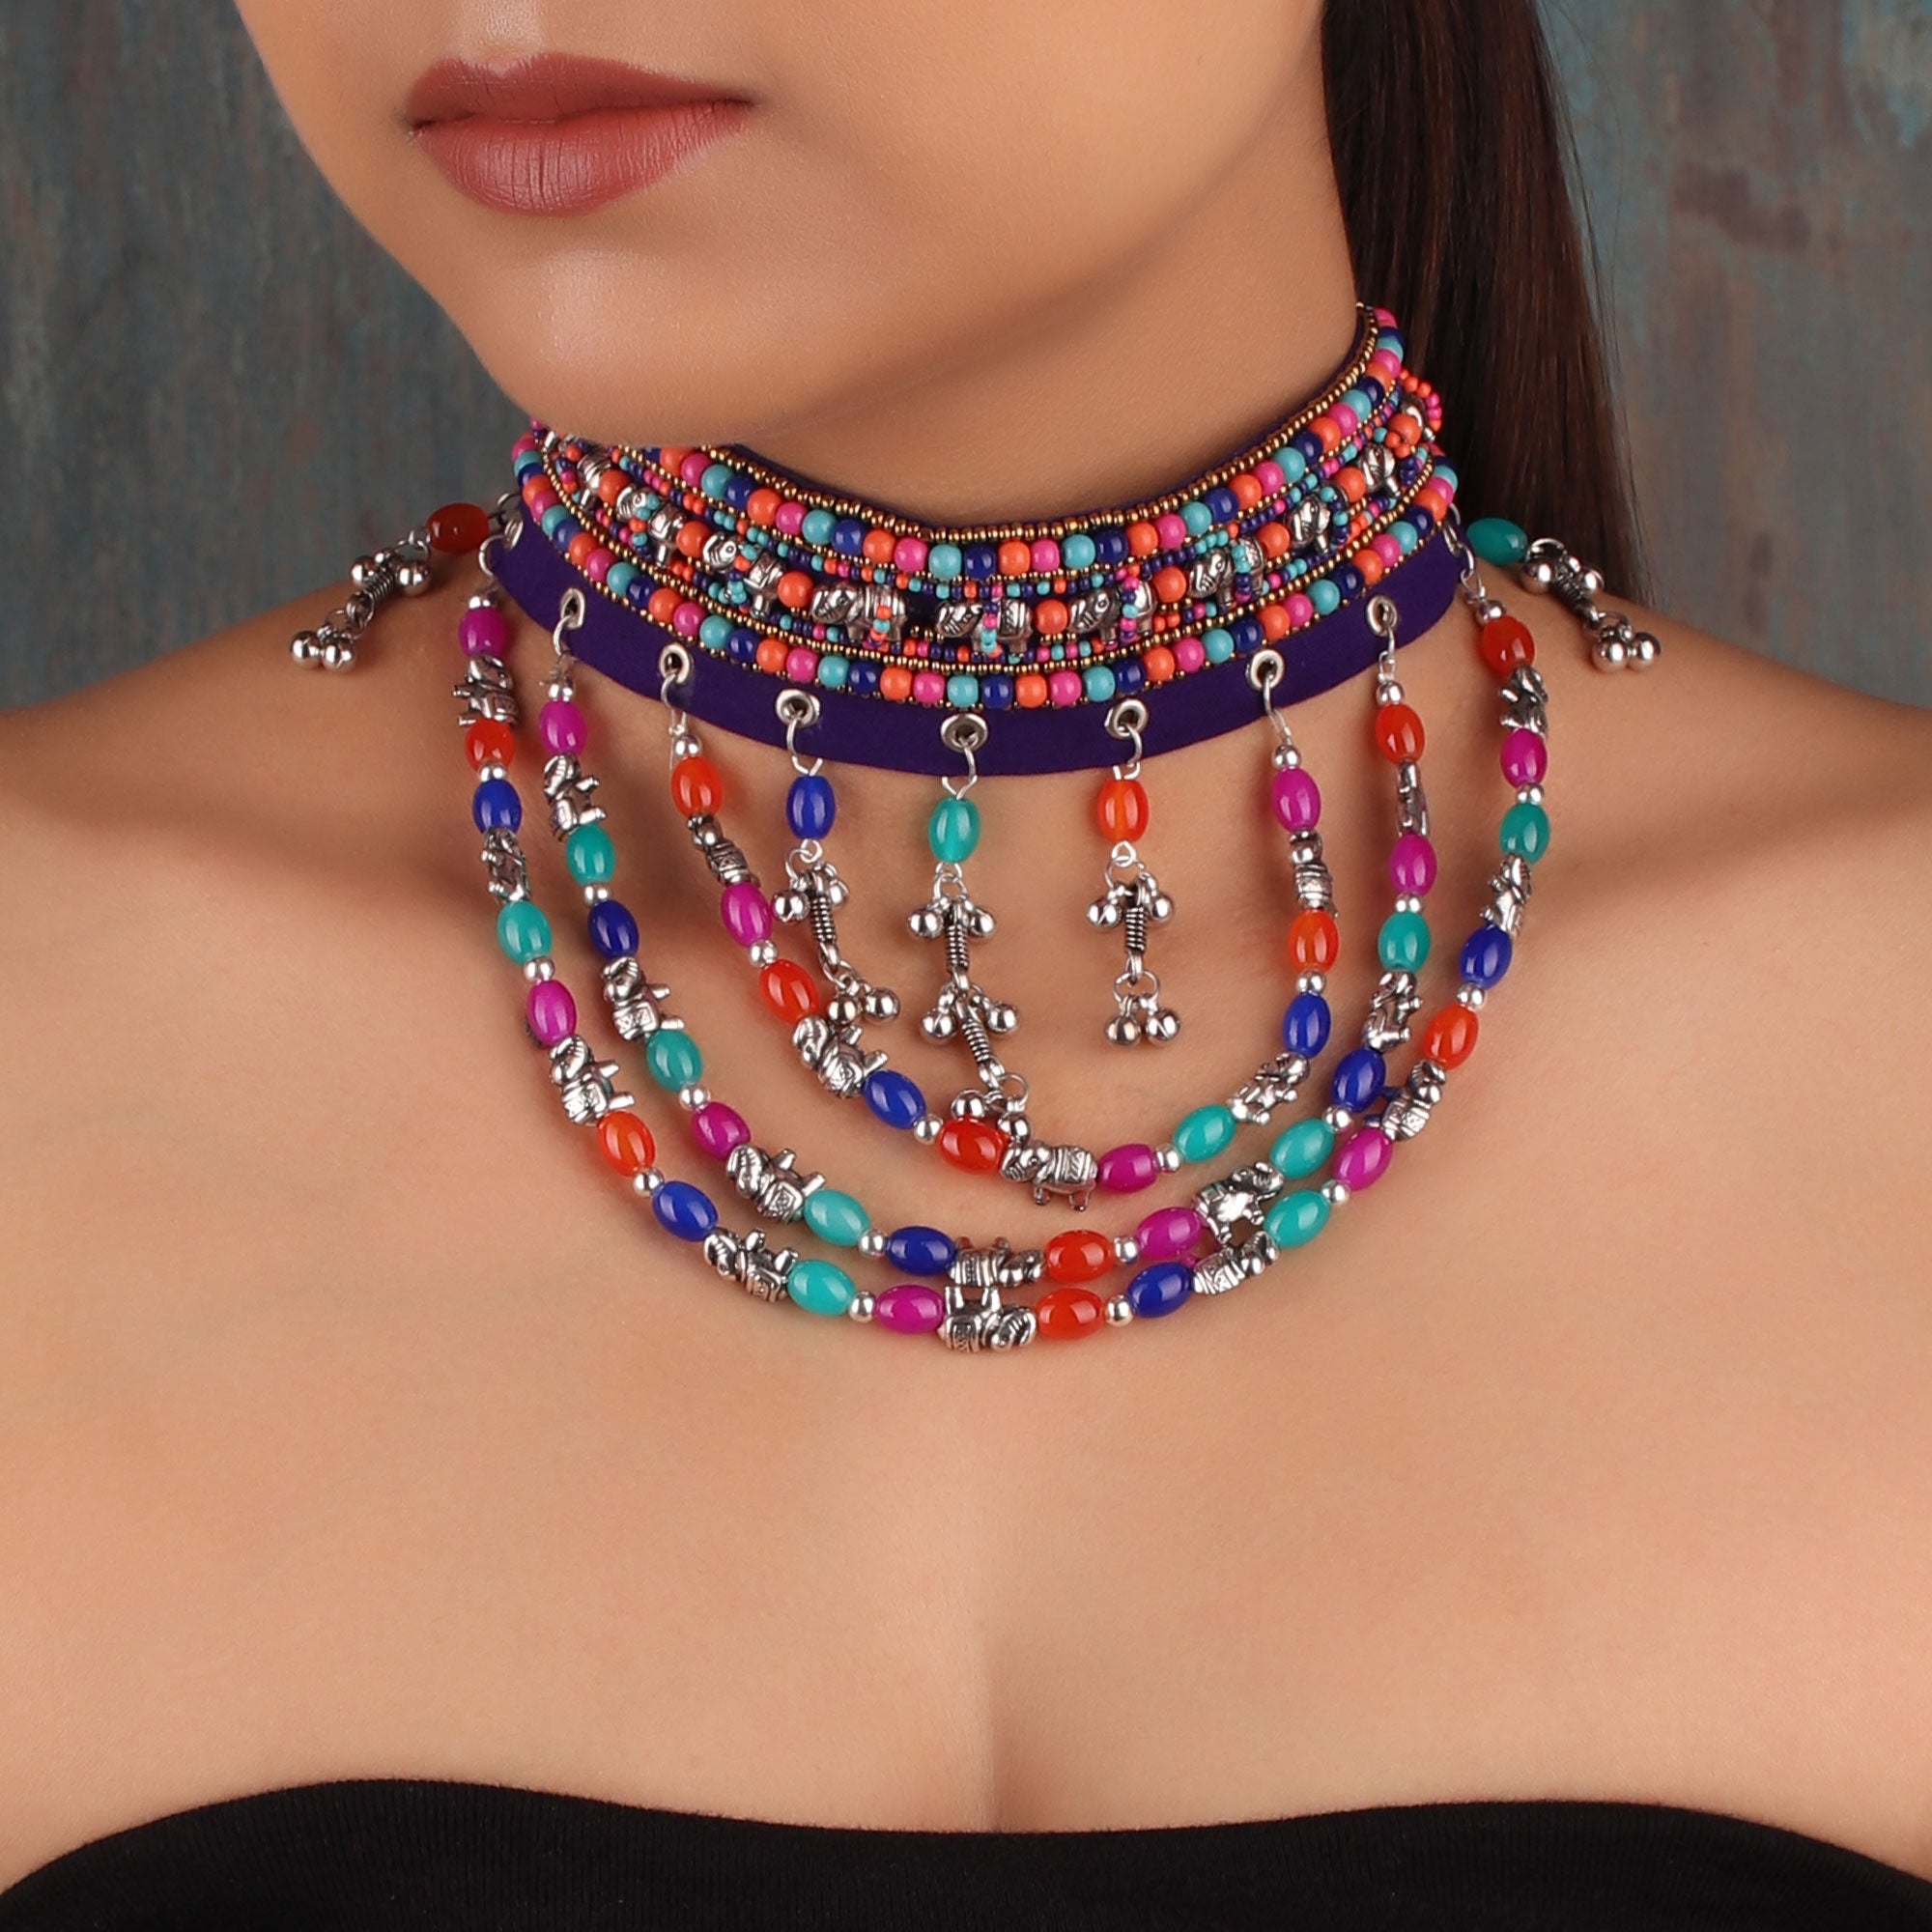 Necklace,The Colorful Pastel Choker - Cippele Multi Store